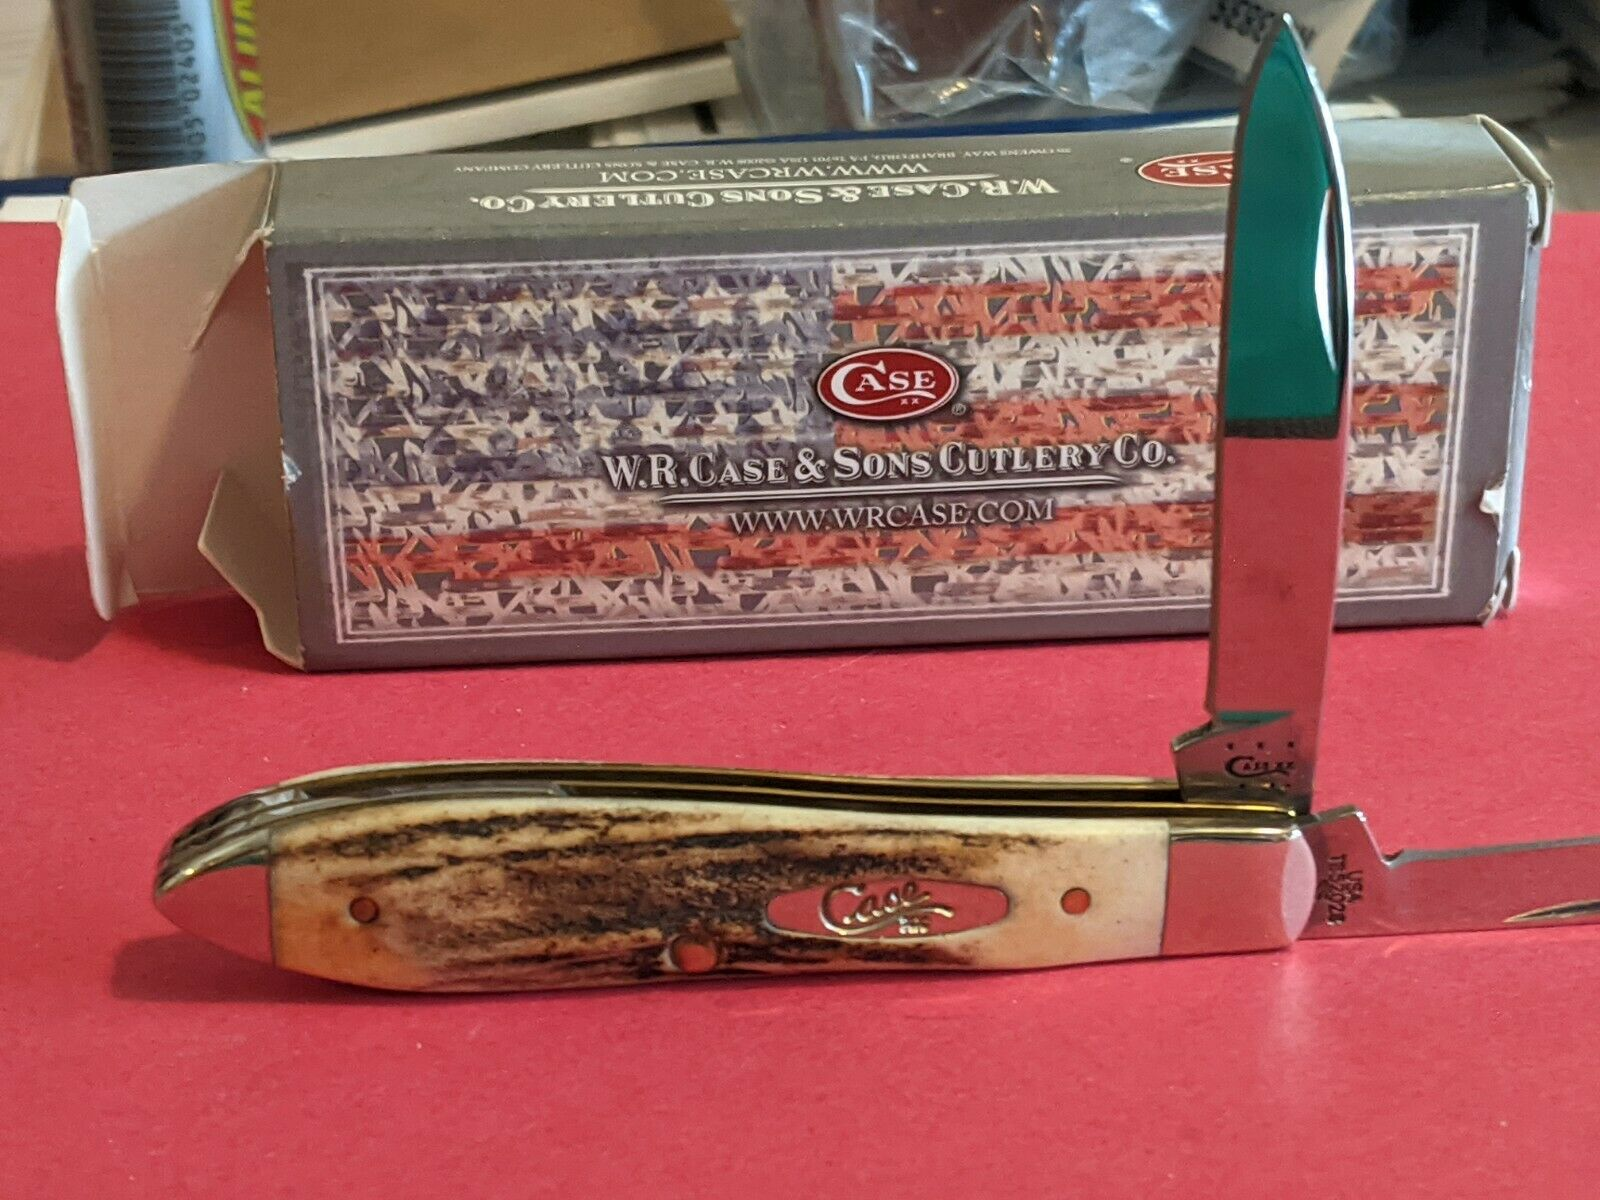 Case Stag Tony Bose Teardrop Jack Knife TB 52028SS mint condition unused